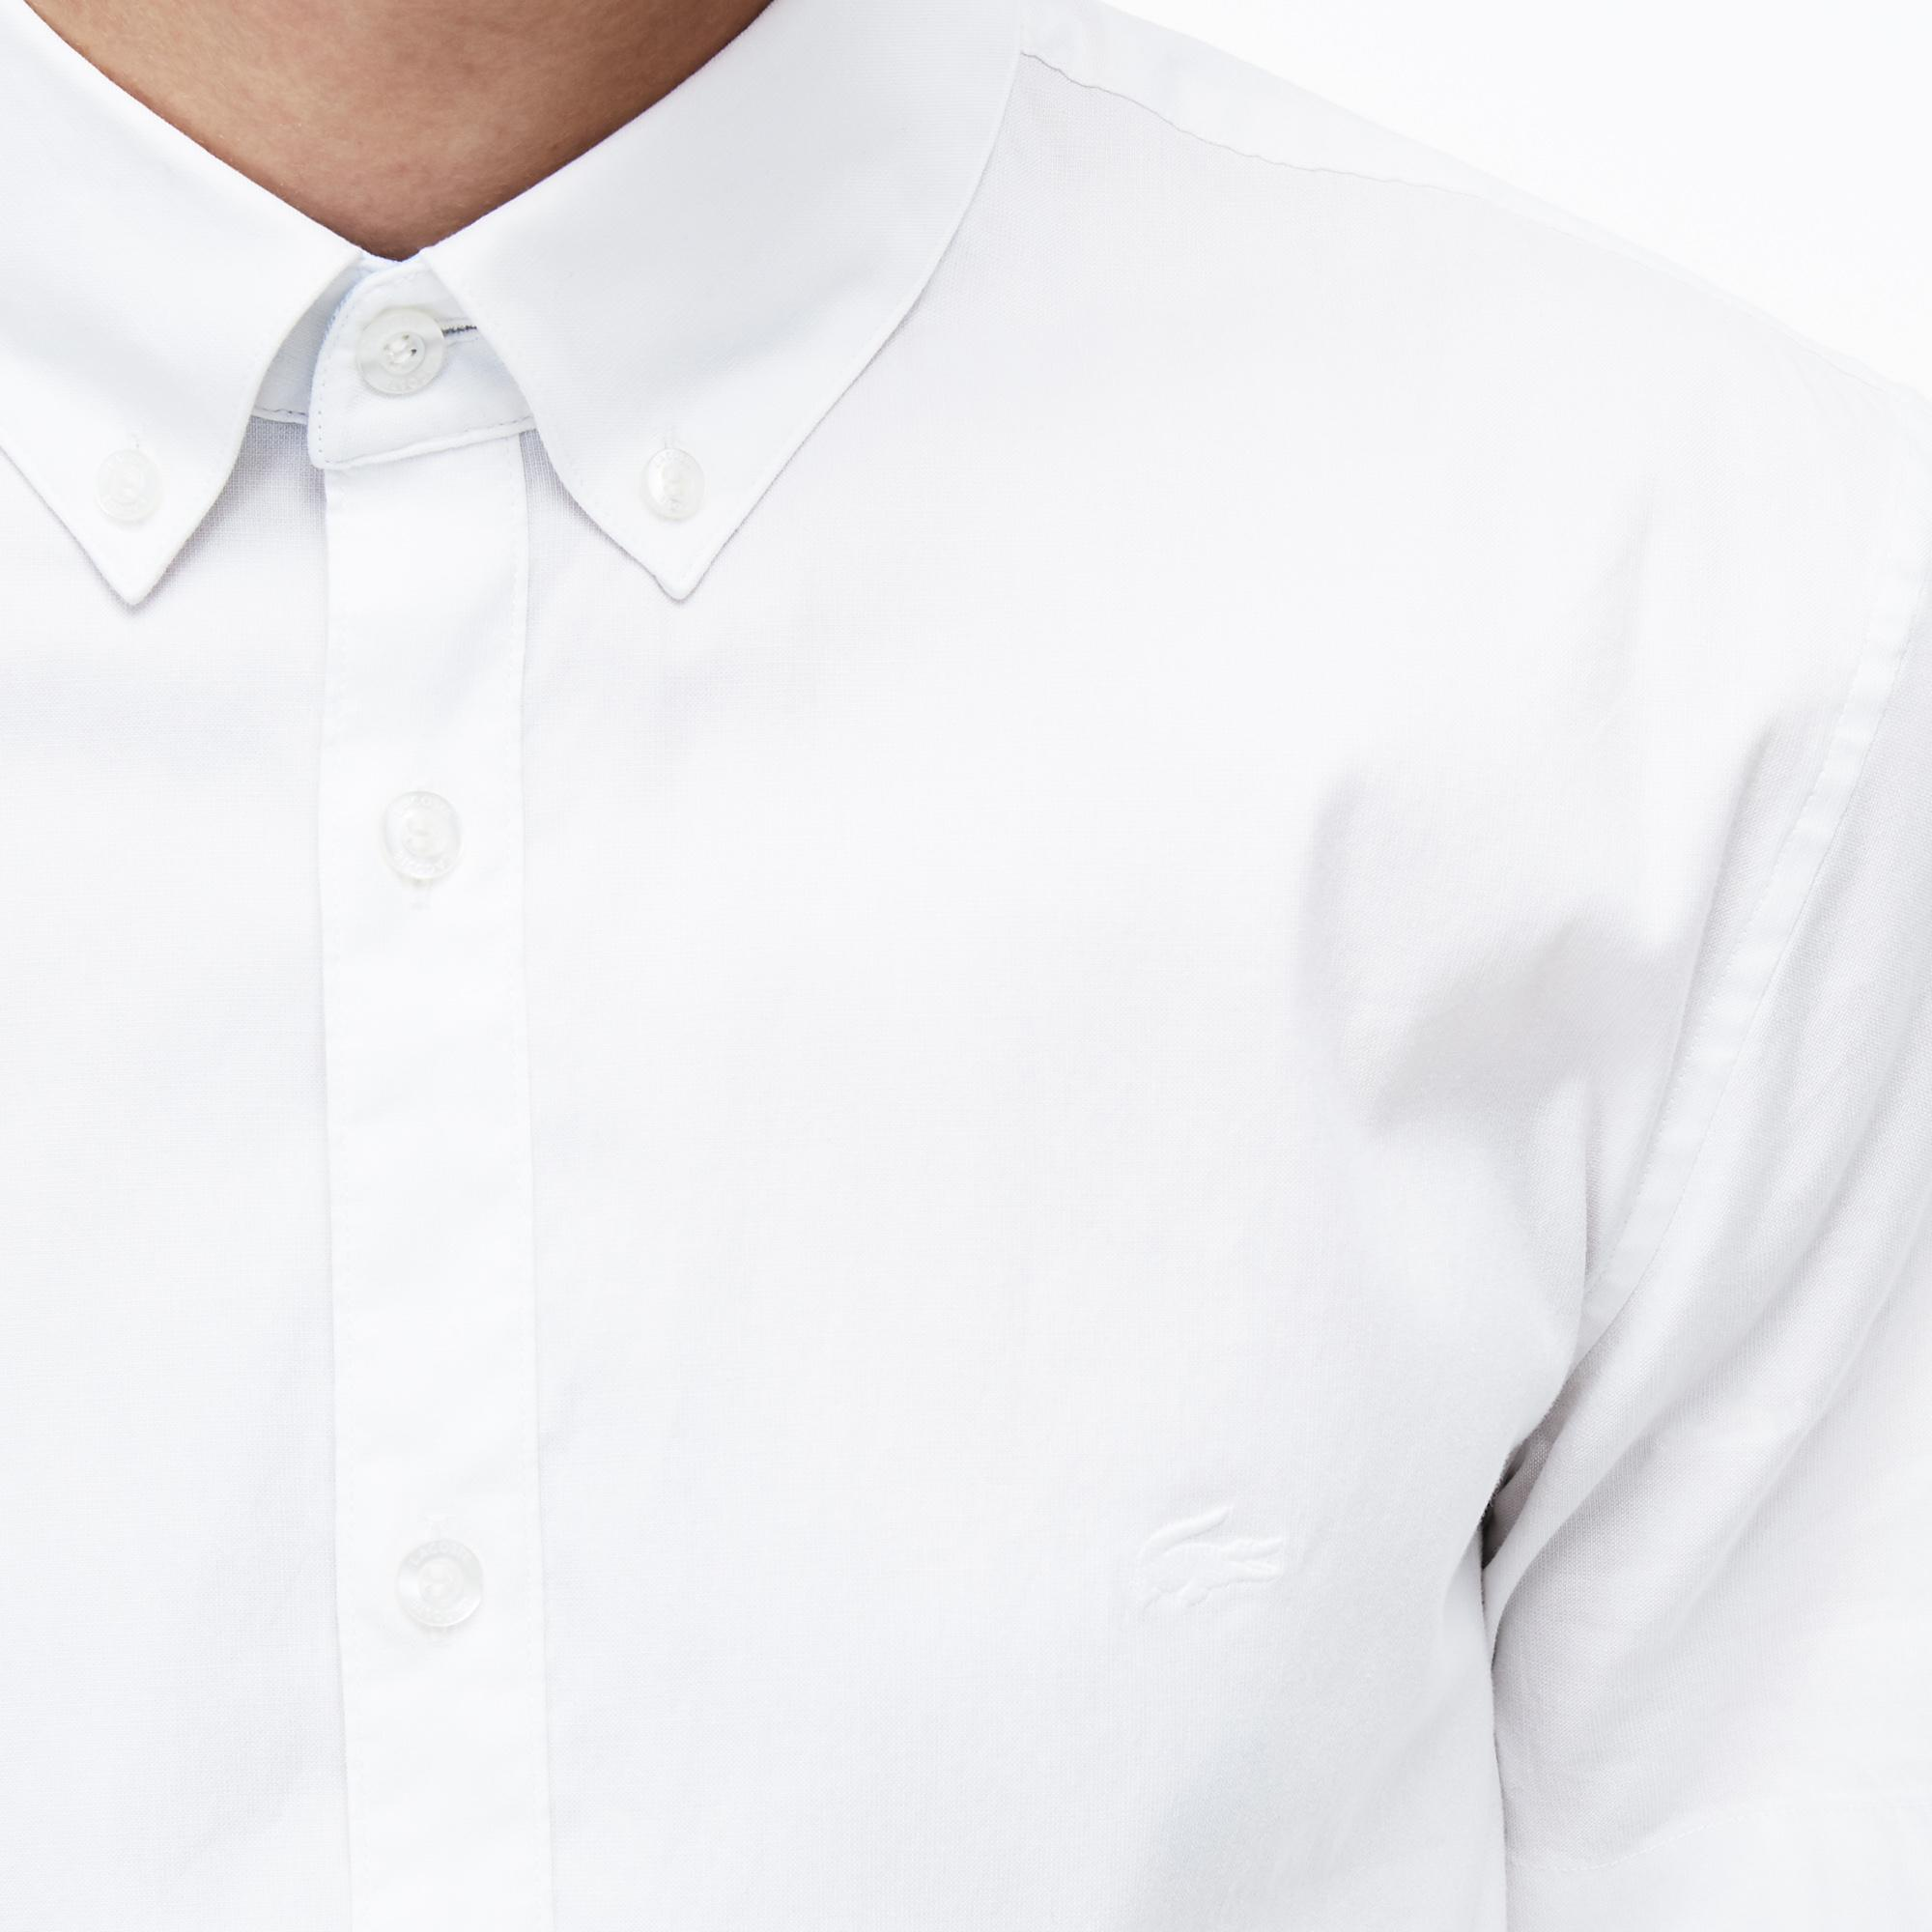 Lacoste Men's Short Sleeve Wovens Shirt